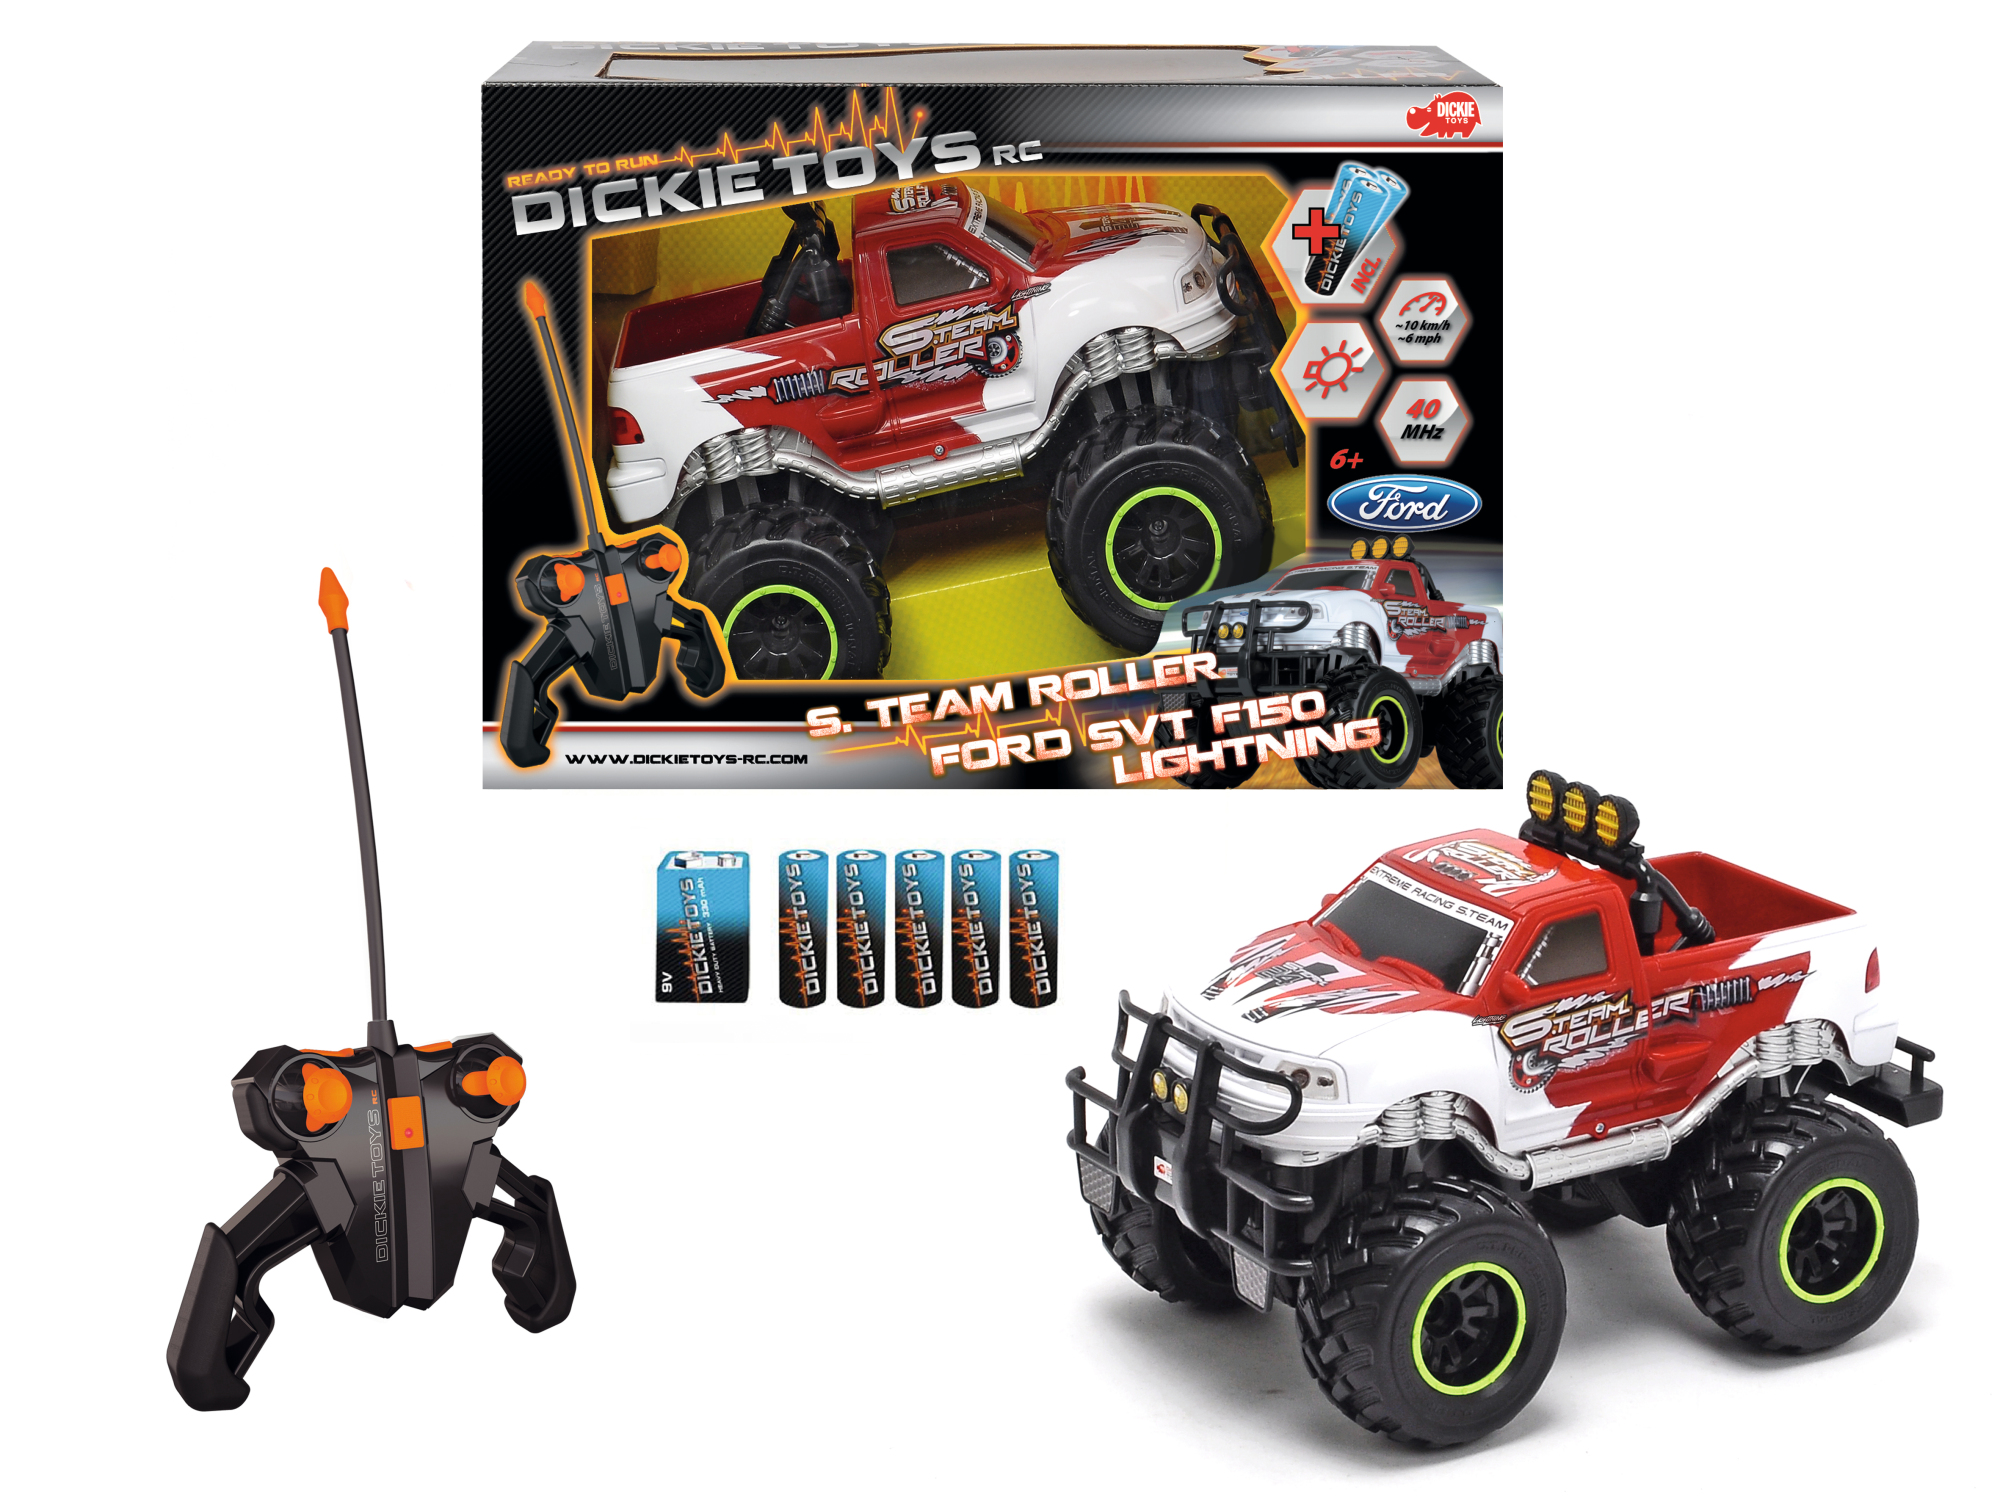 RC Ford F150 Team Roller - RTR